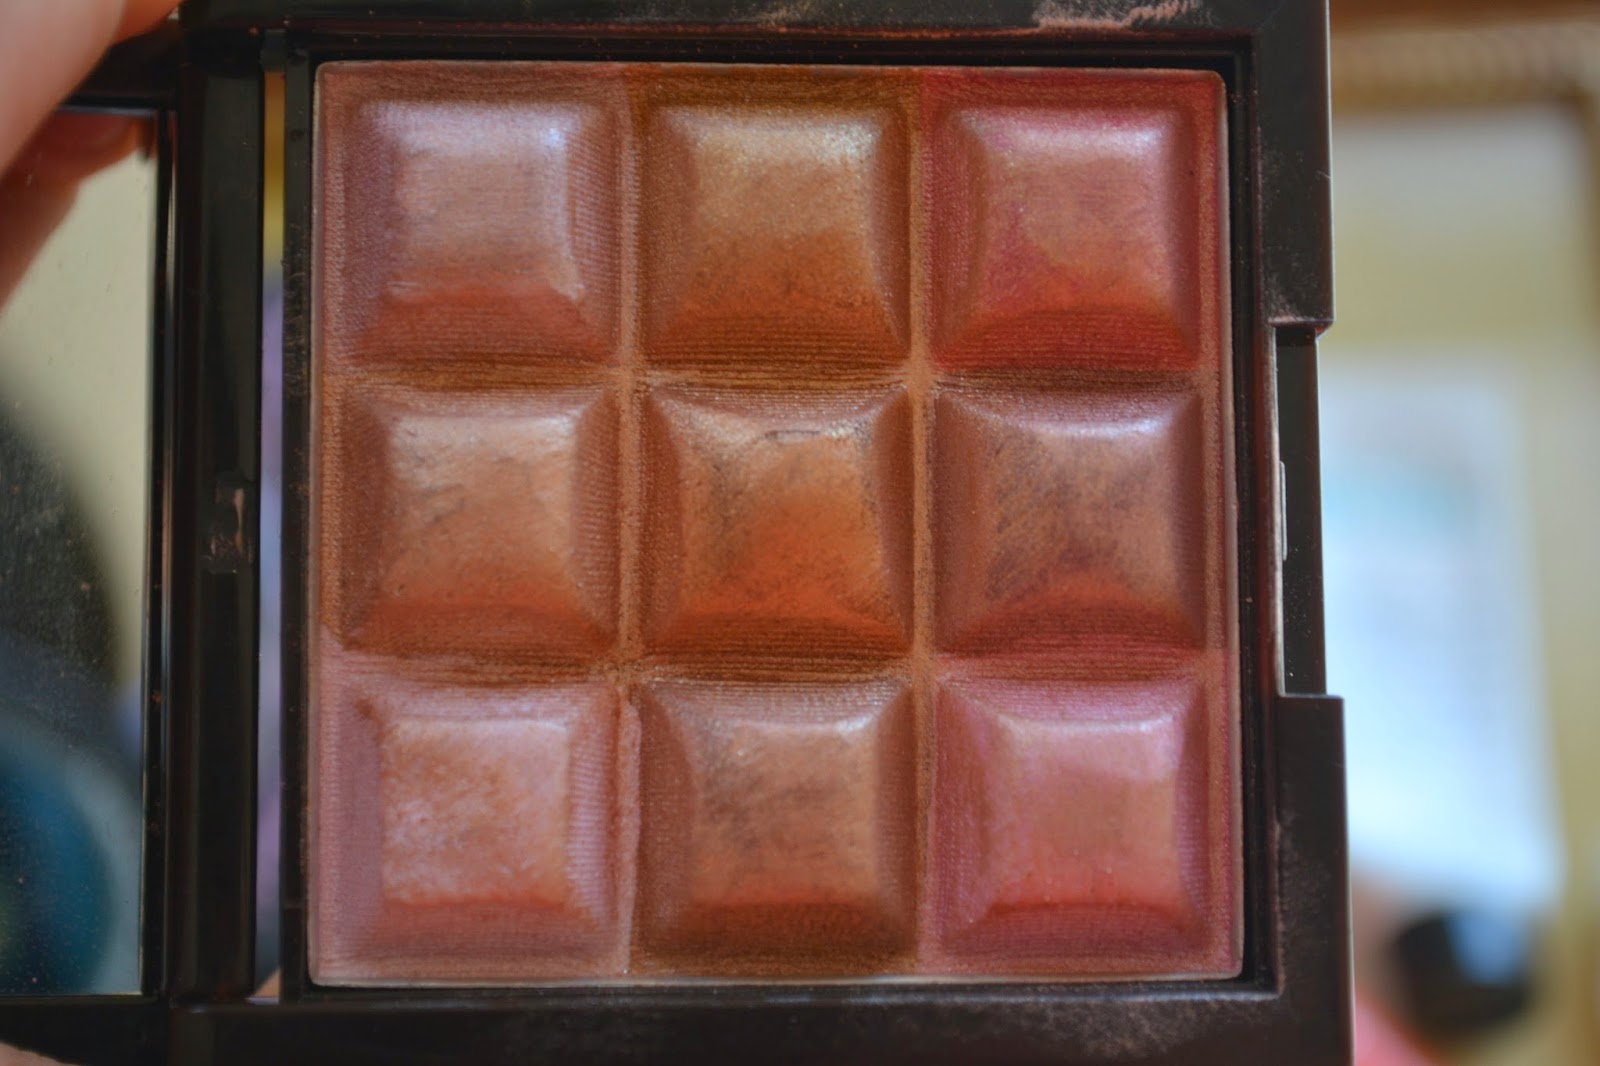 Touch & Glow Shimmer Cream Cubes All Over Face Palette